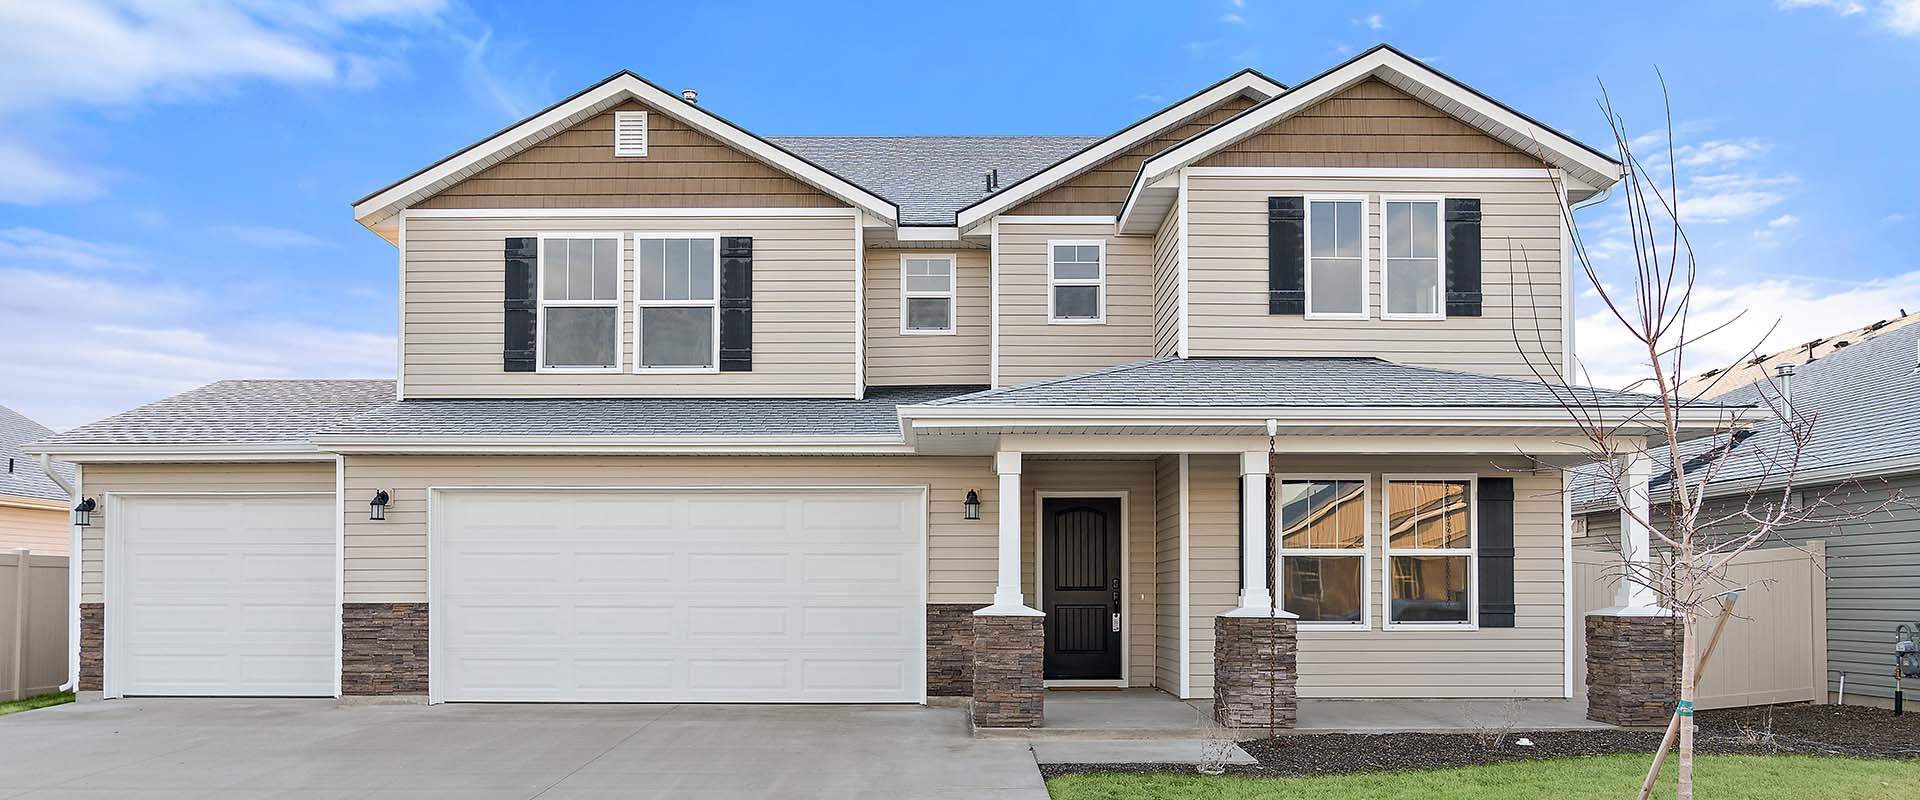 Yosemite_Exterior2_Hubble_Homes_New_Homes_Boise.jpg